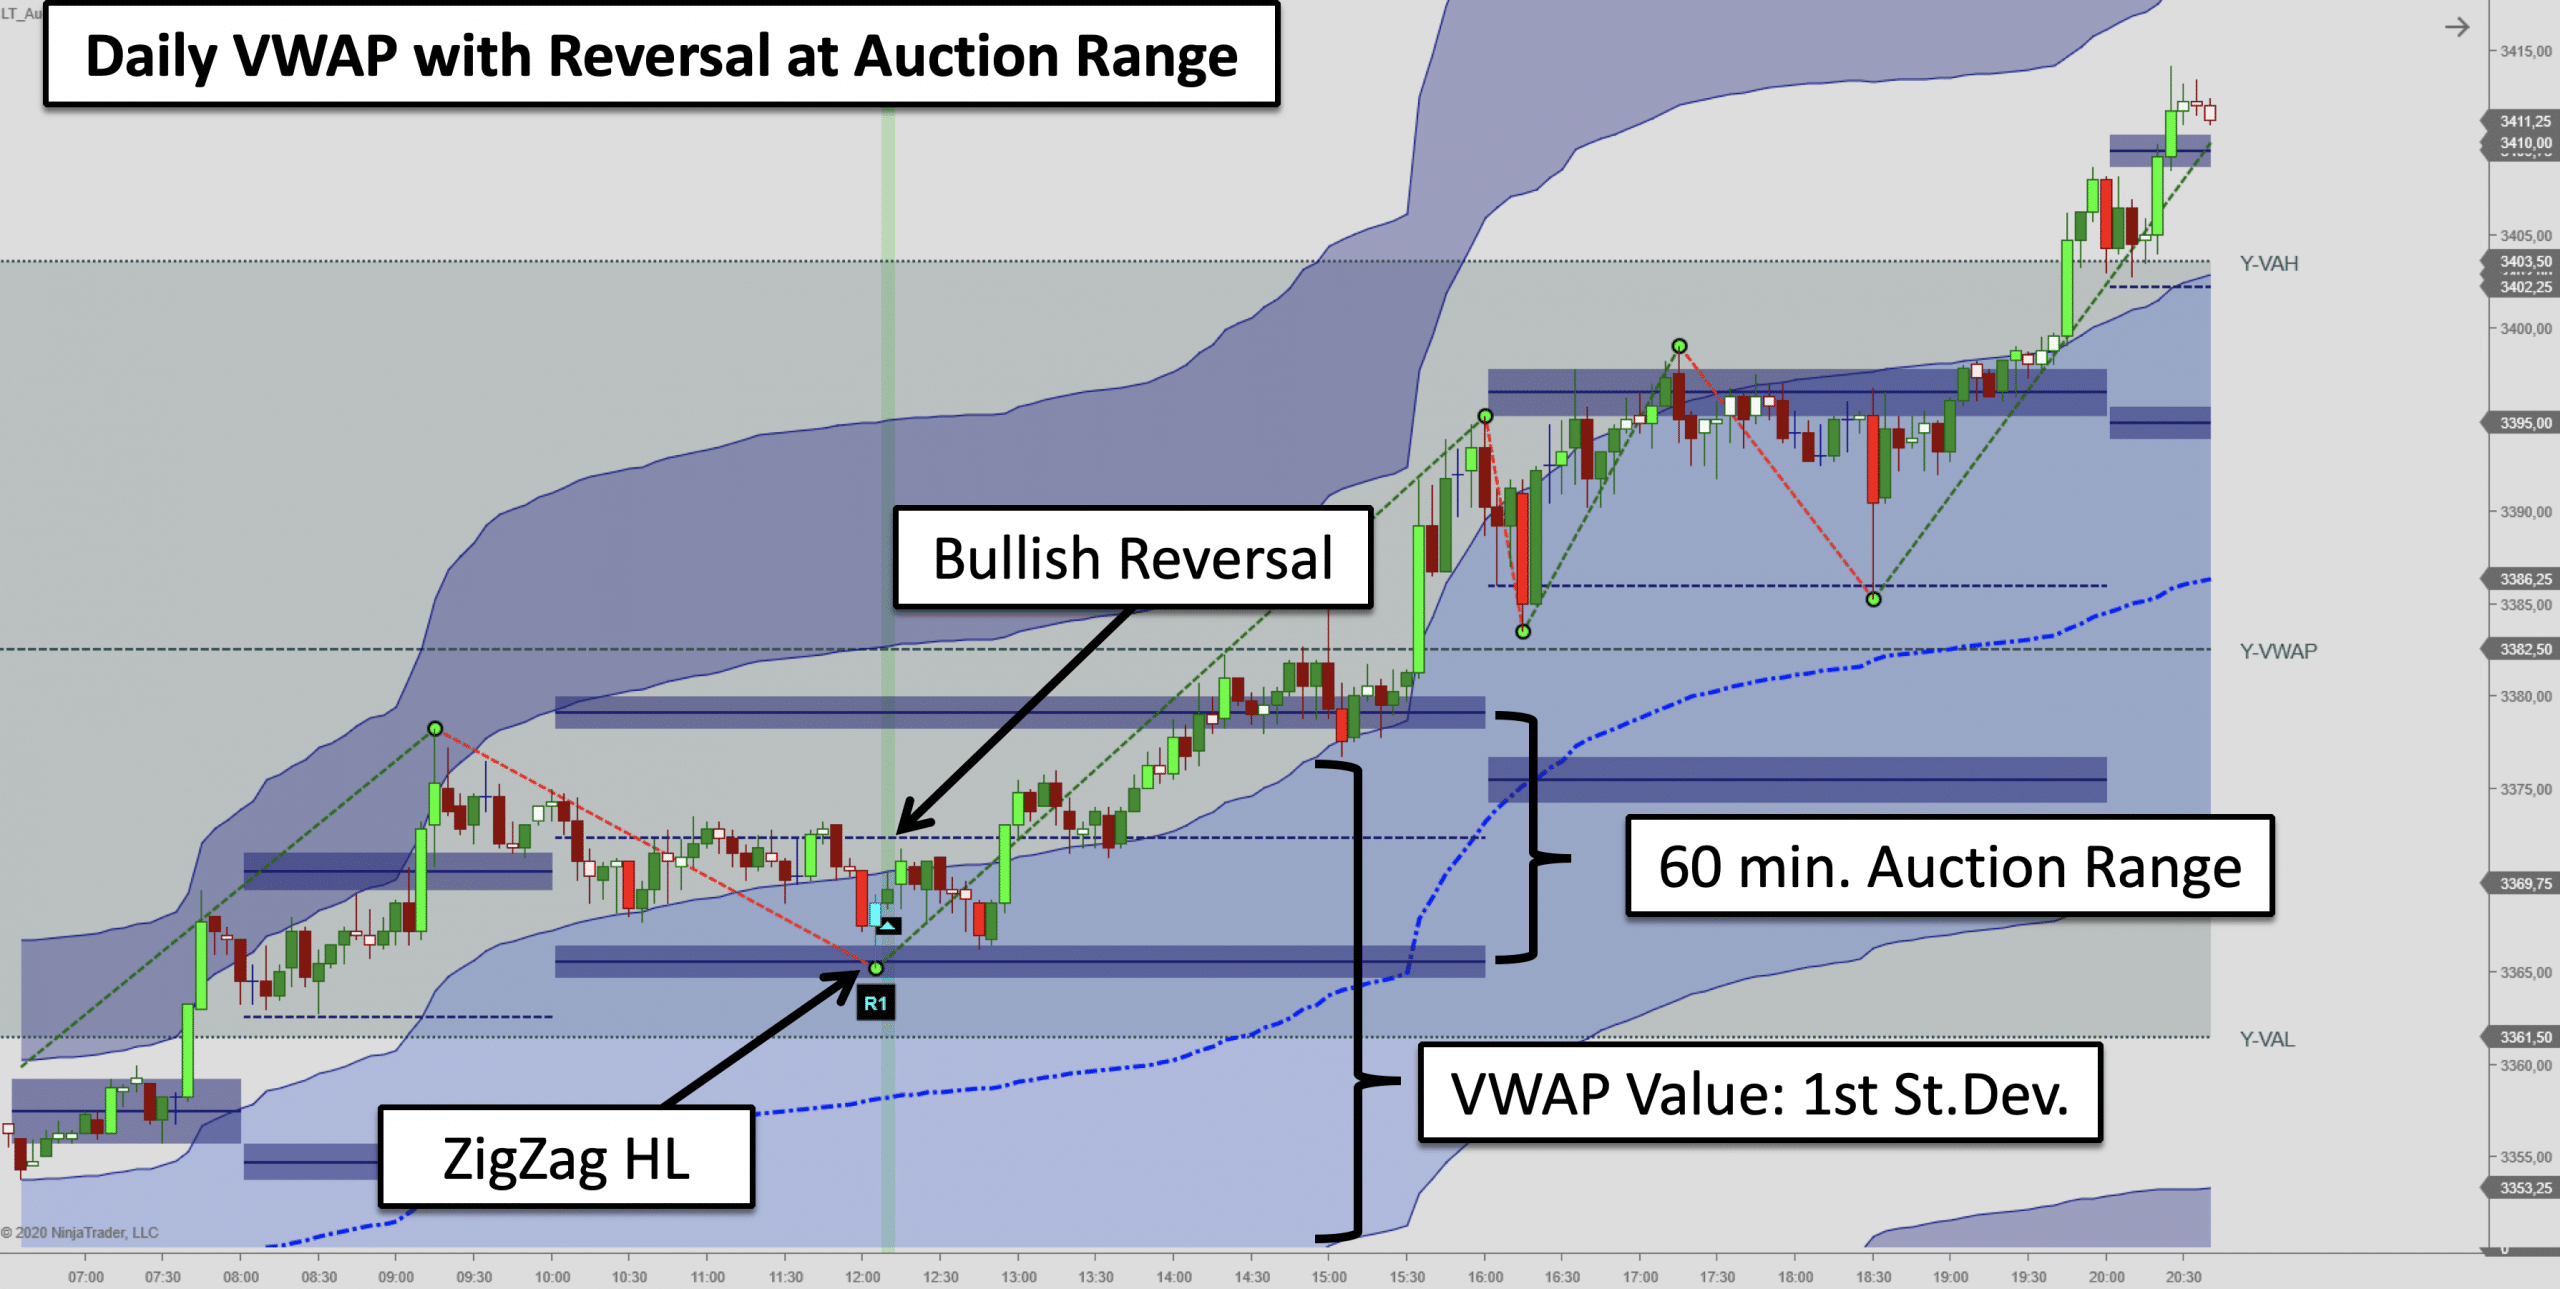 Candlestick Reversal Pattern aligned with VWAP value